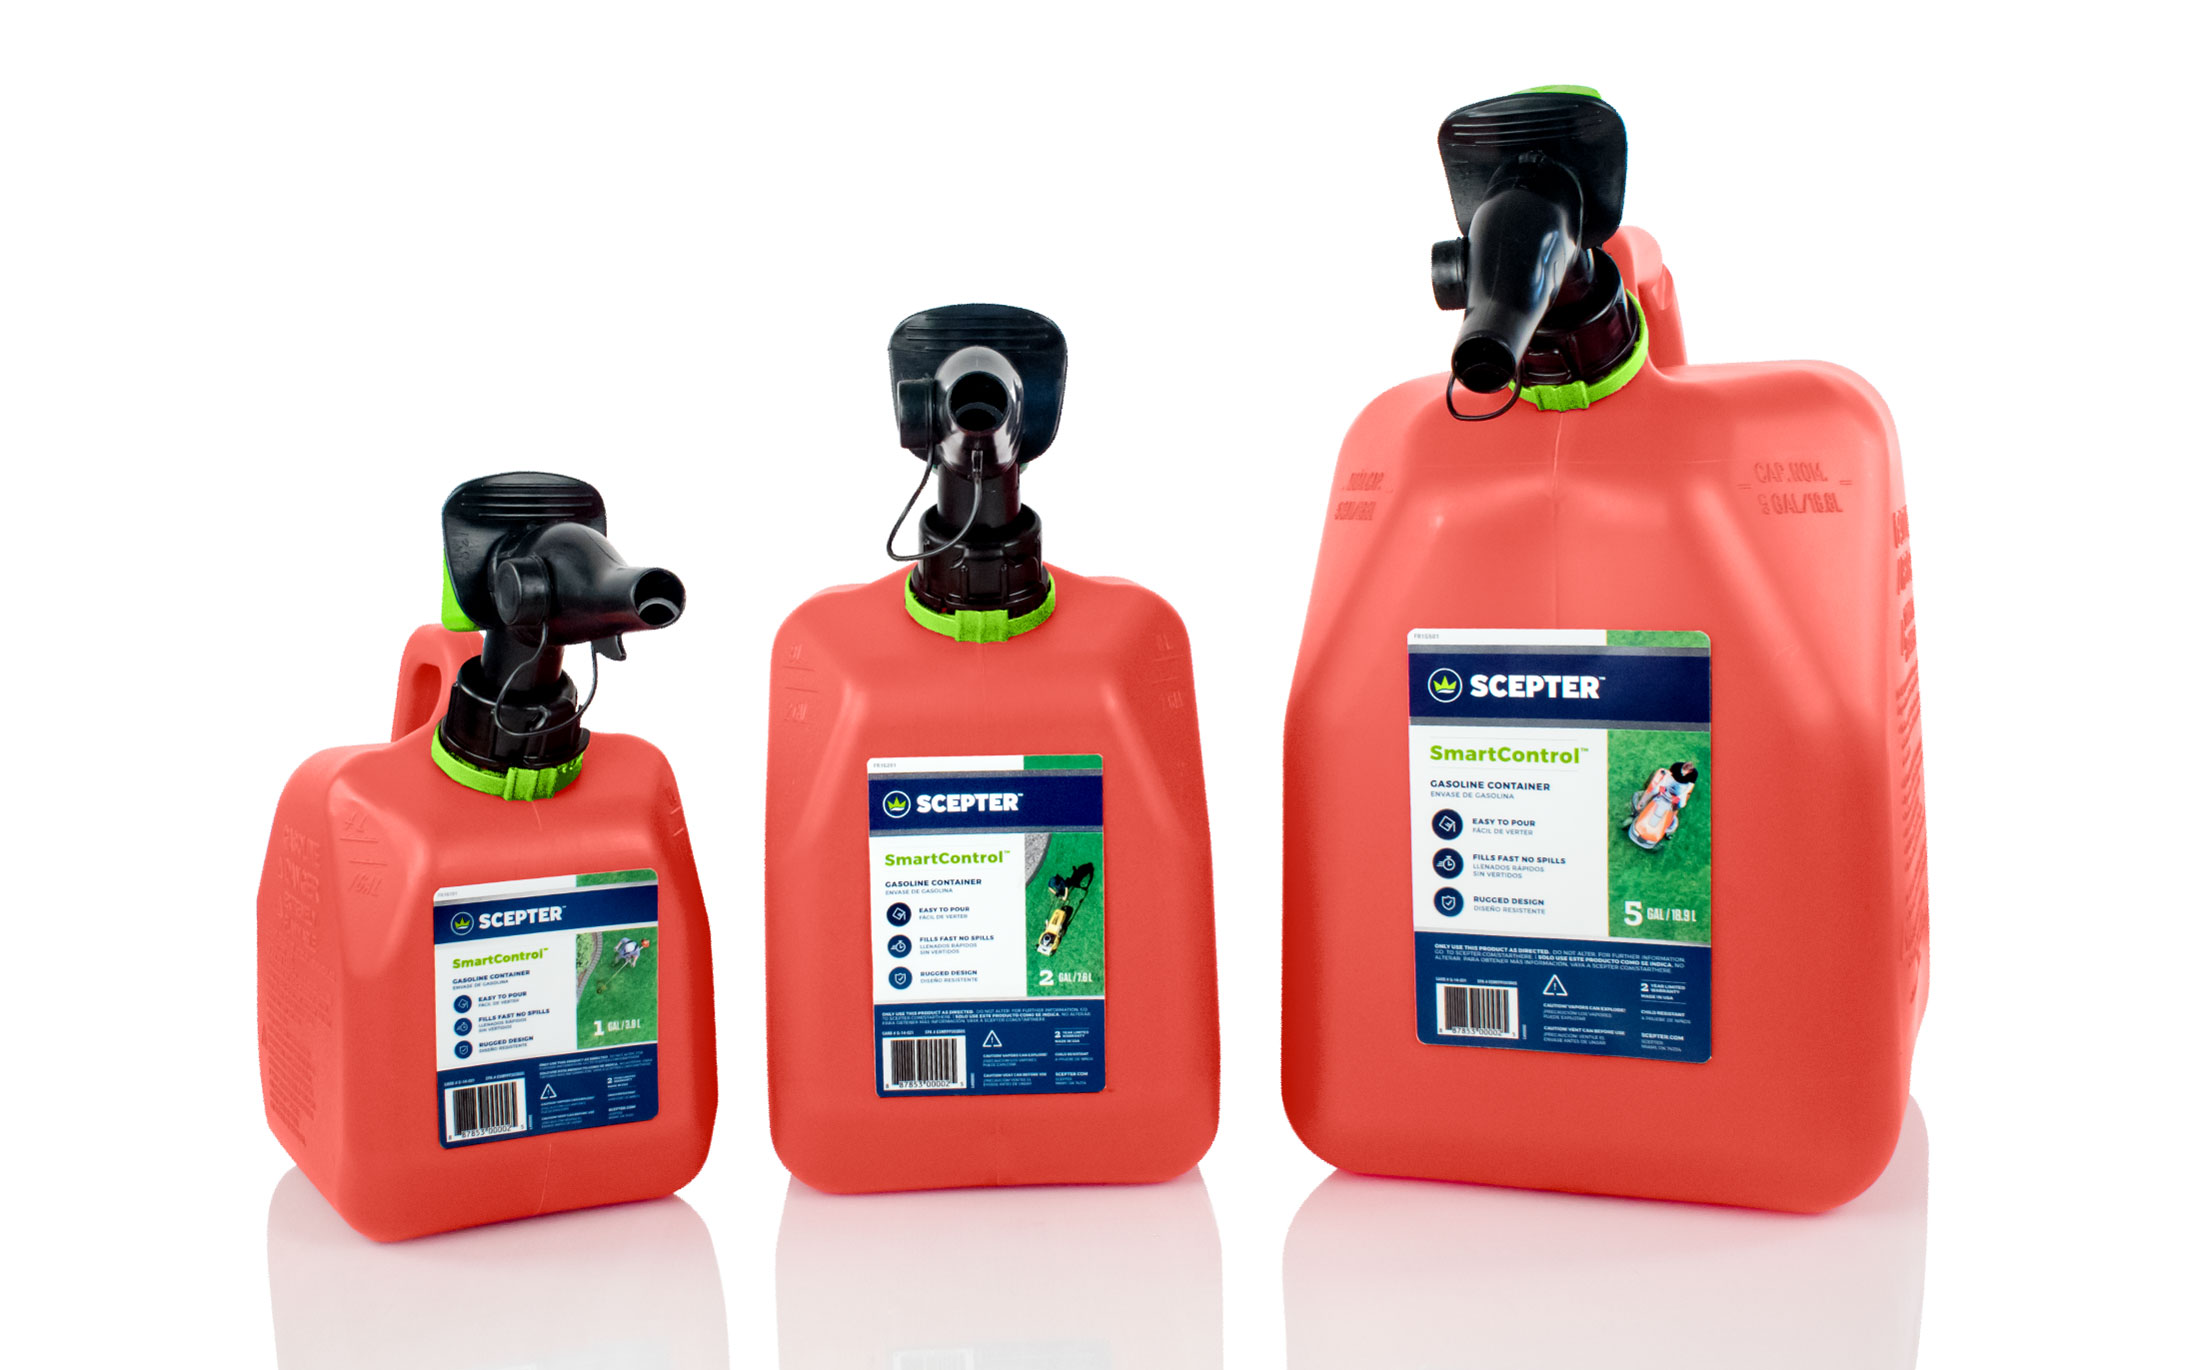 Scepter Gas Can Family